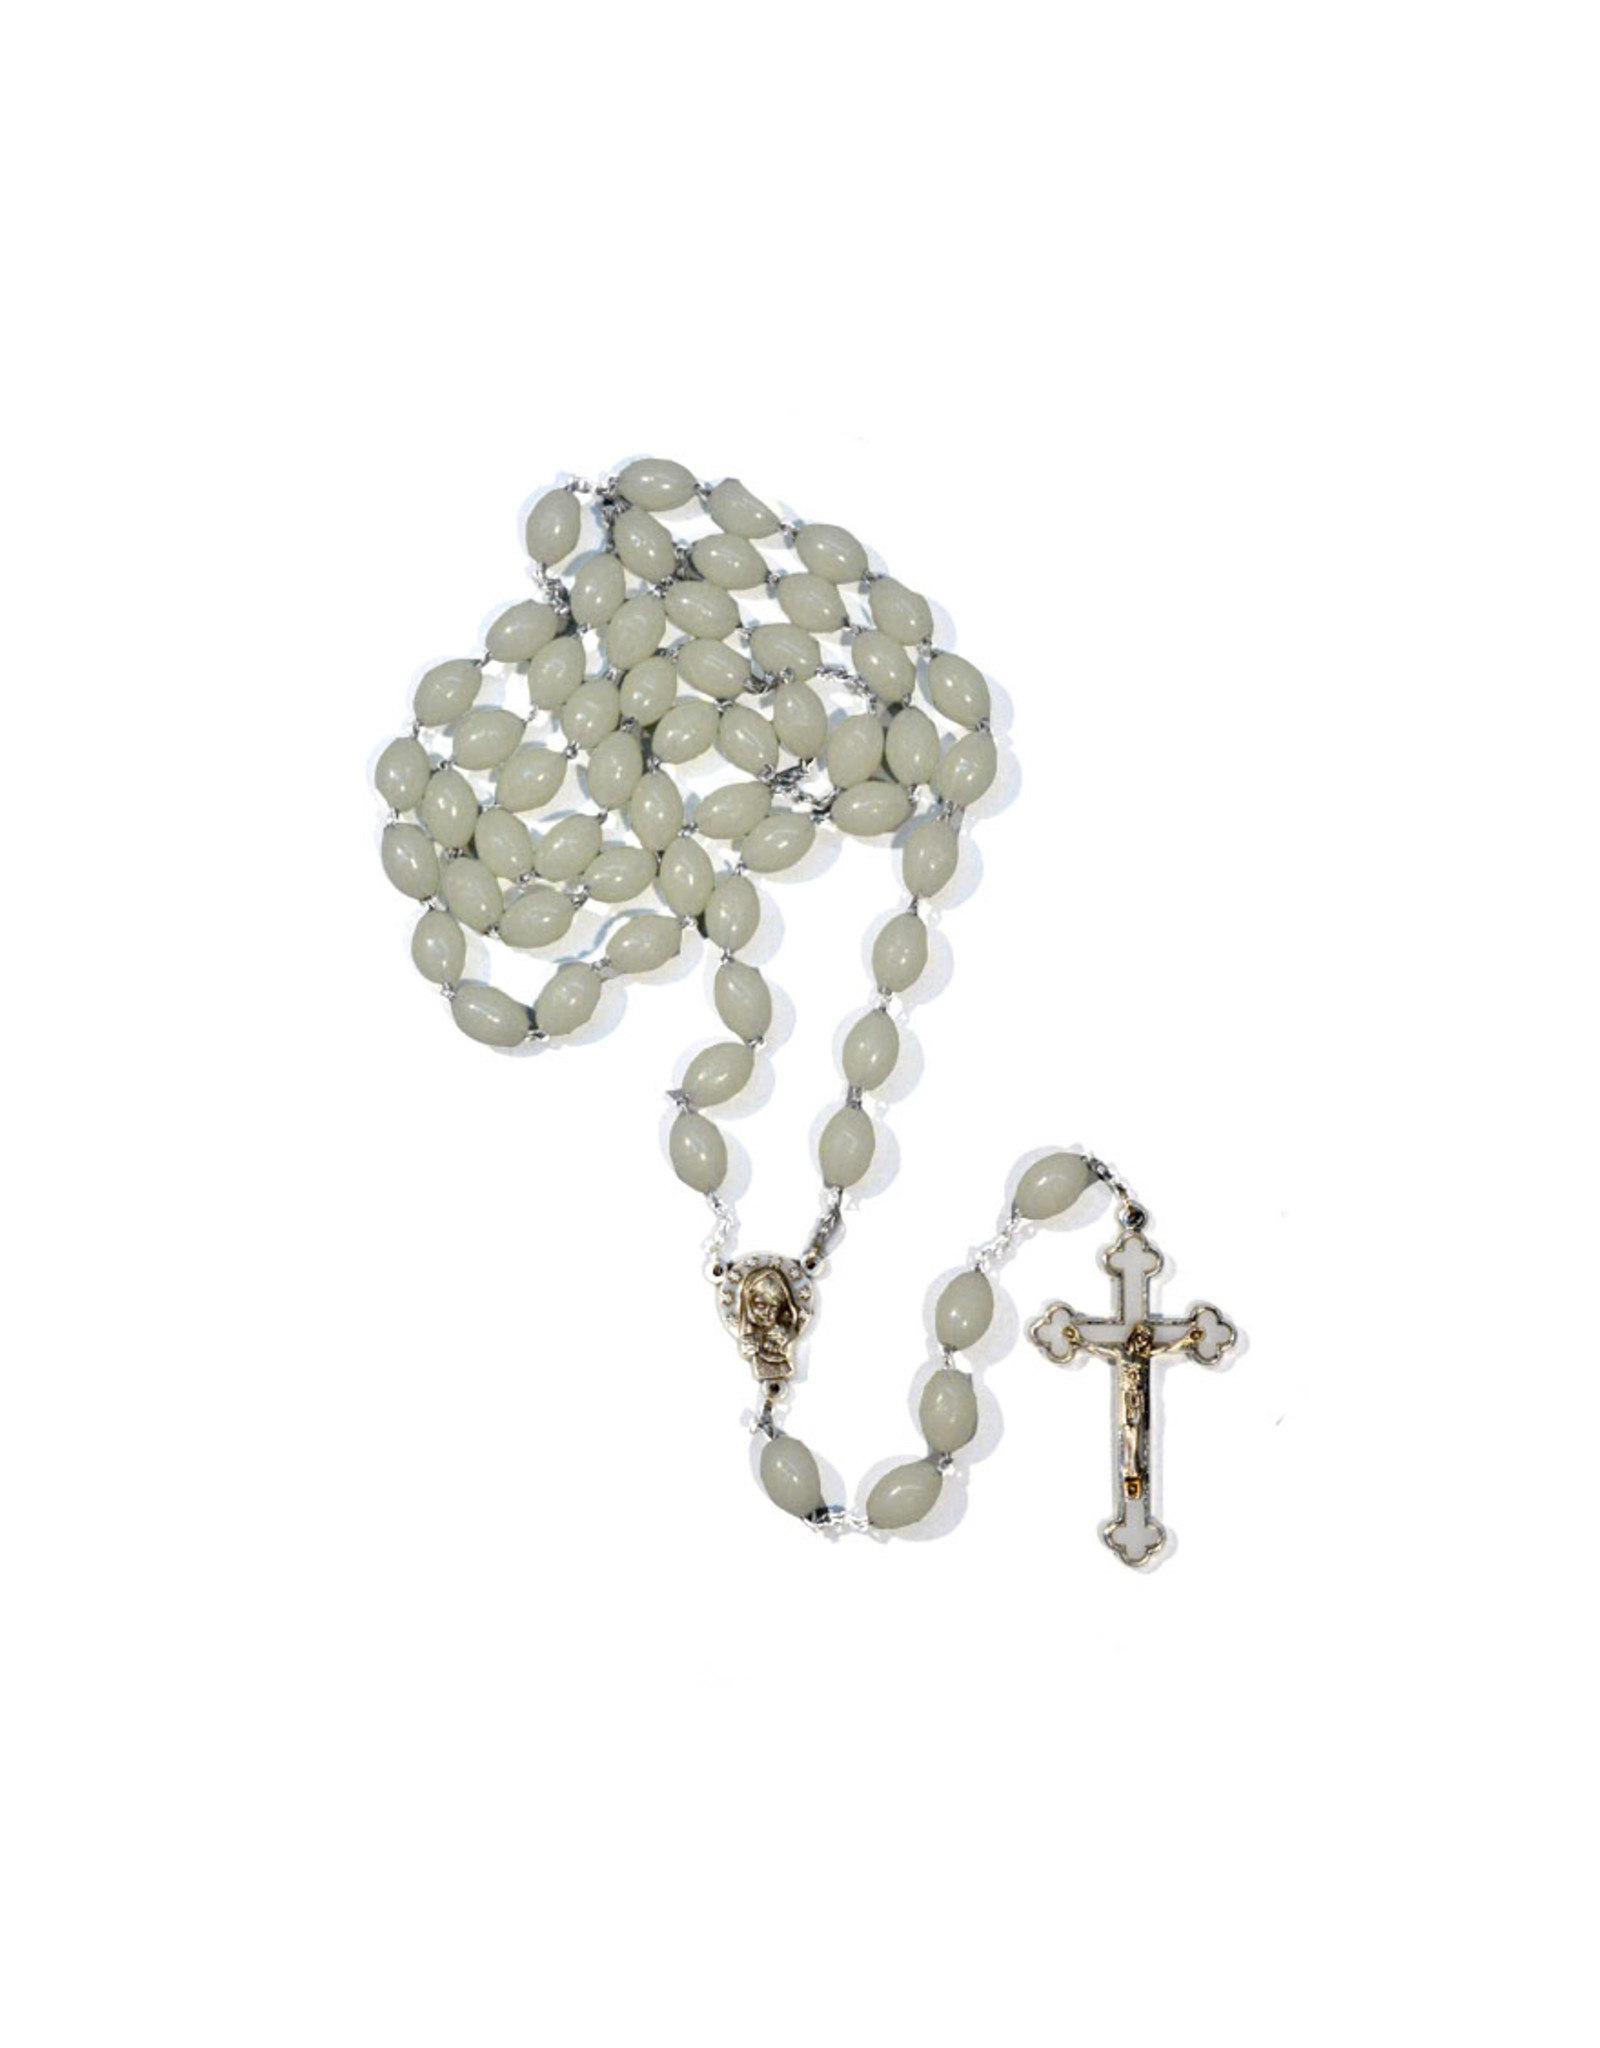 Phosphorescent rosary